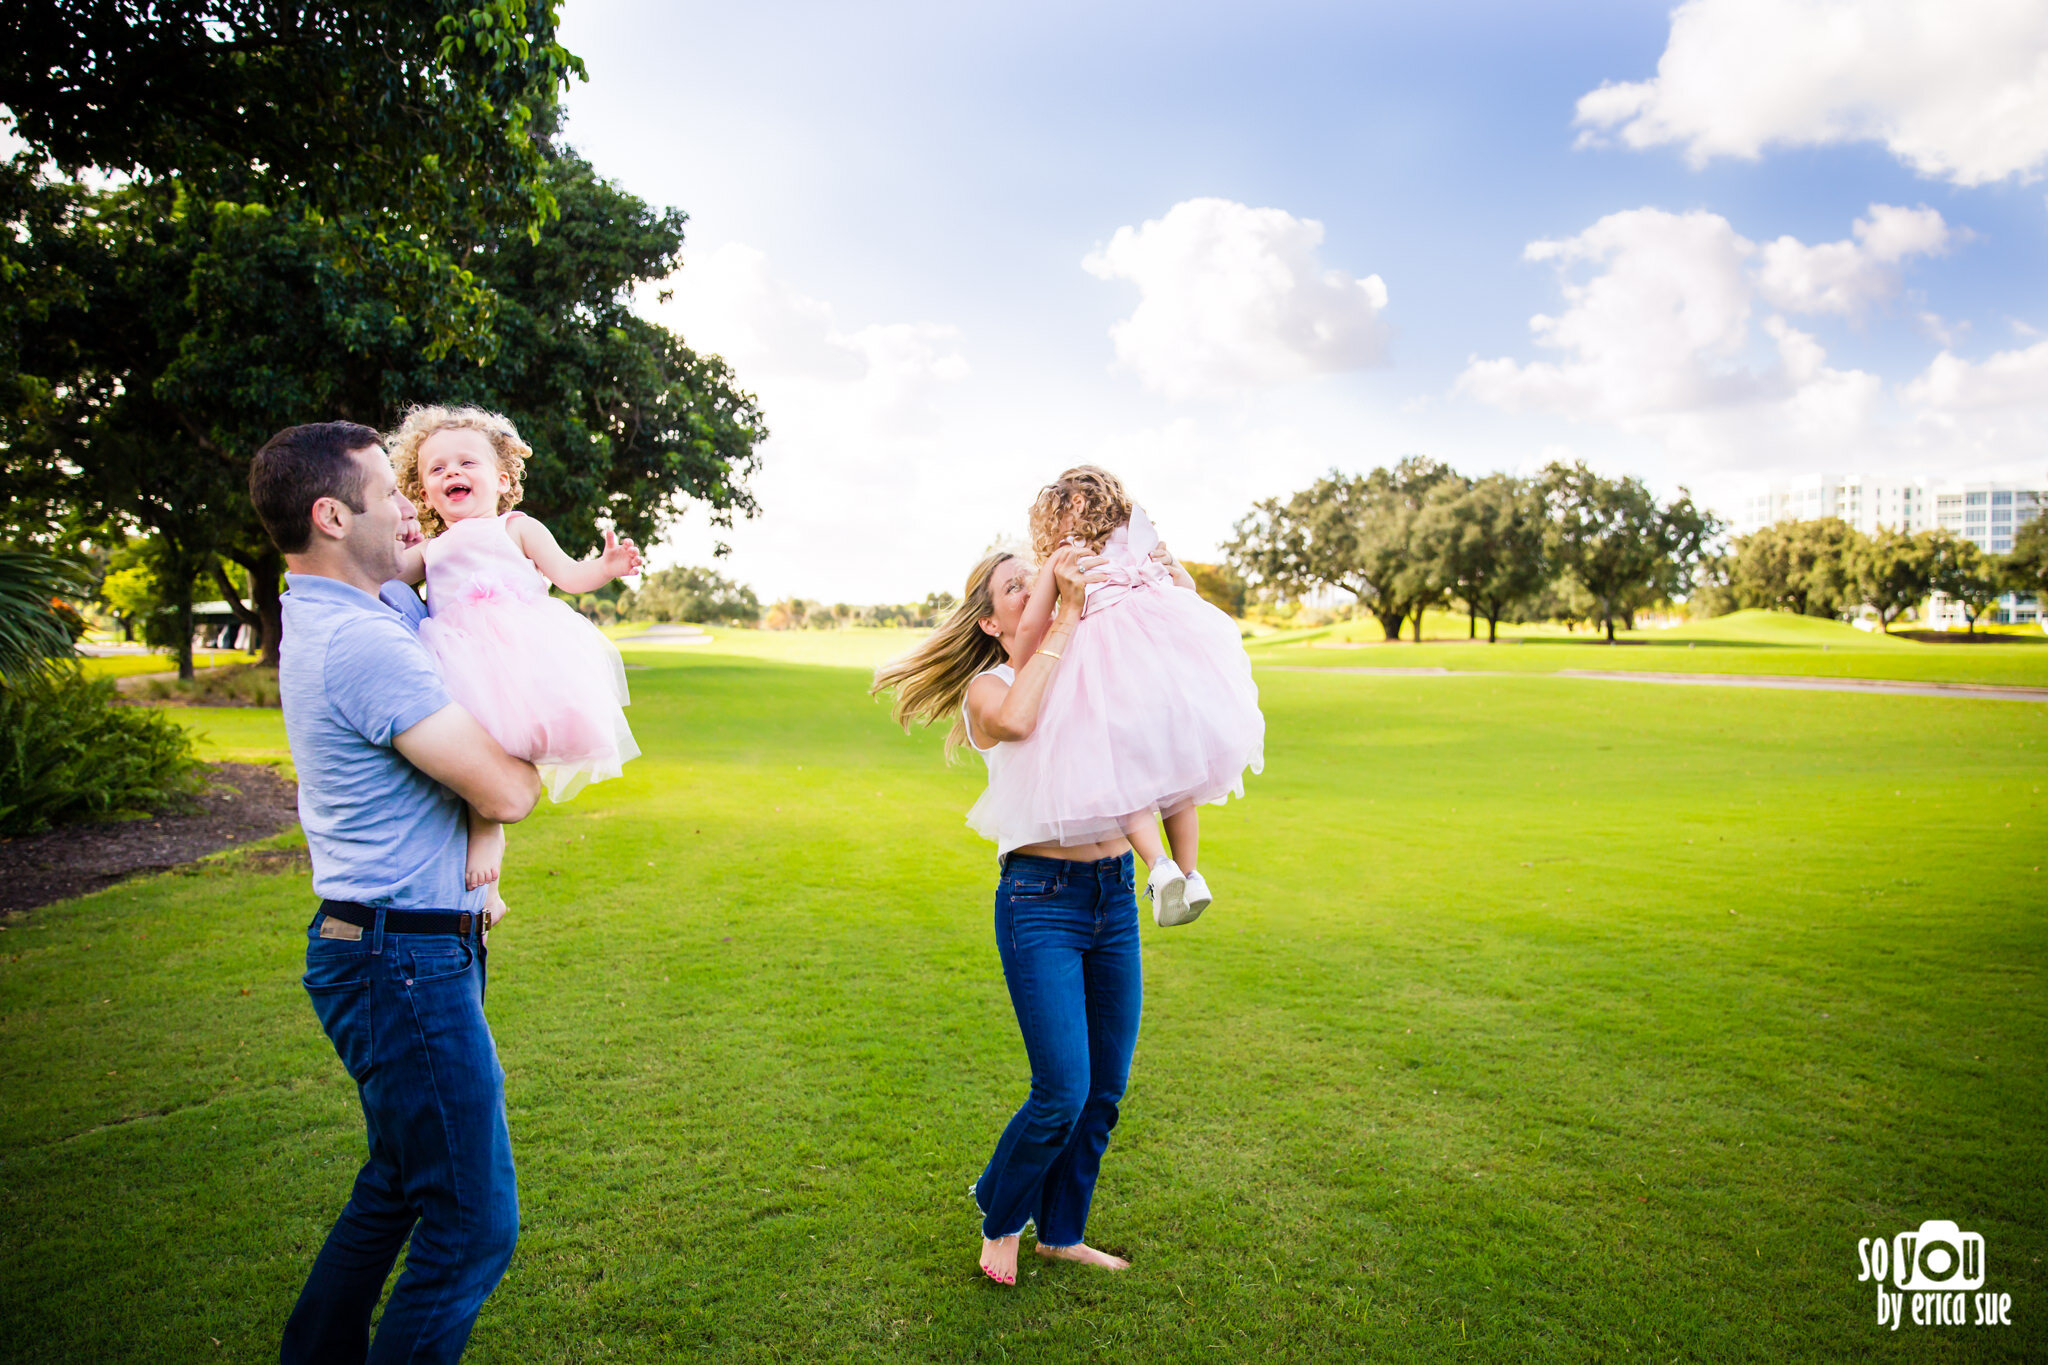 so-you-by-erica-sue-south-florida-extended-family-lifestyle-photo-session-2471.JPG